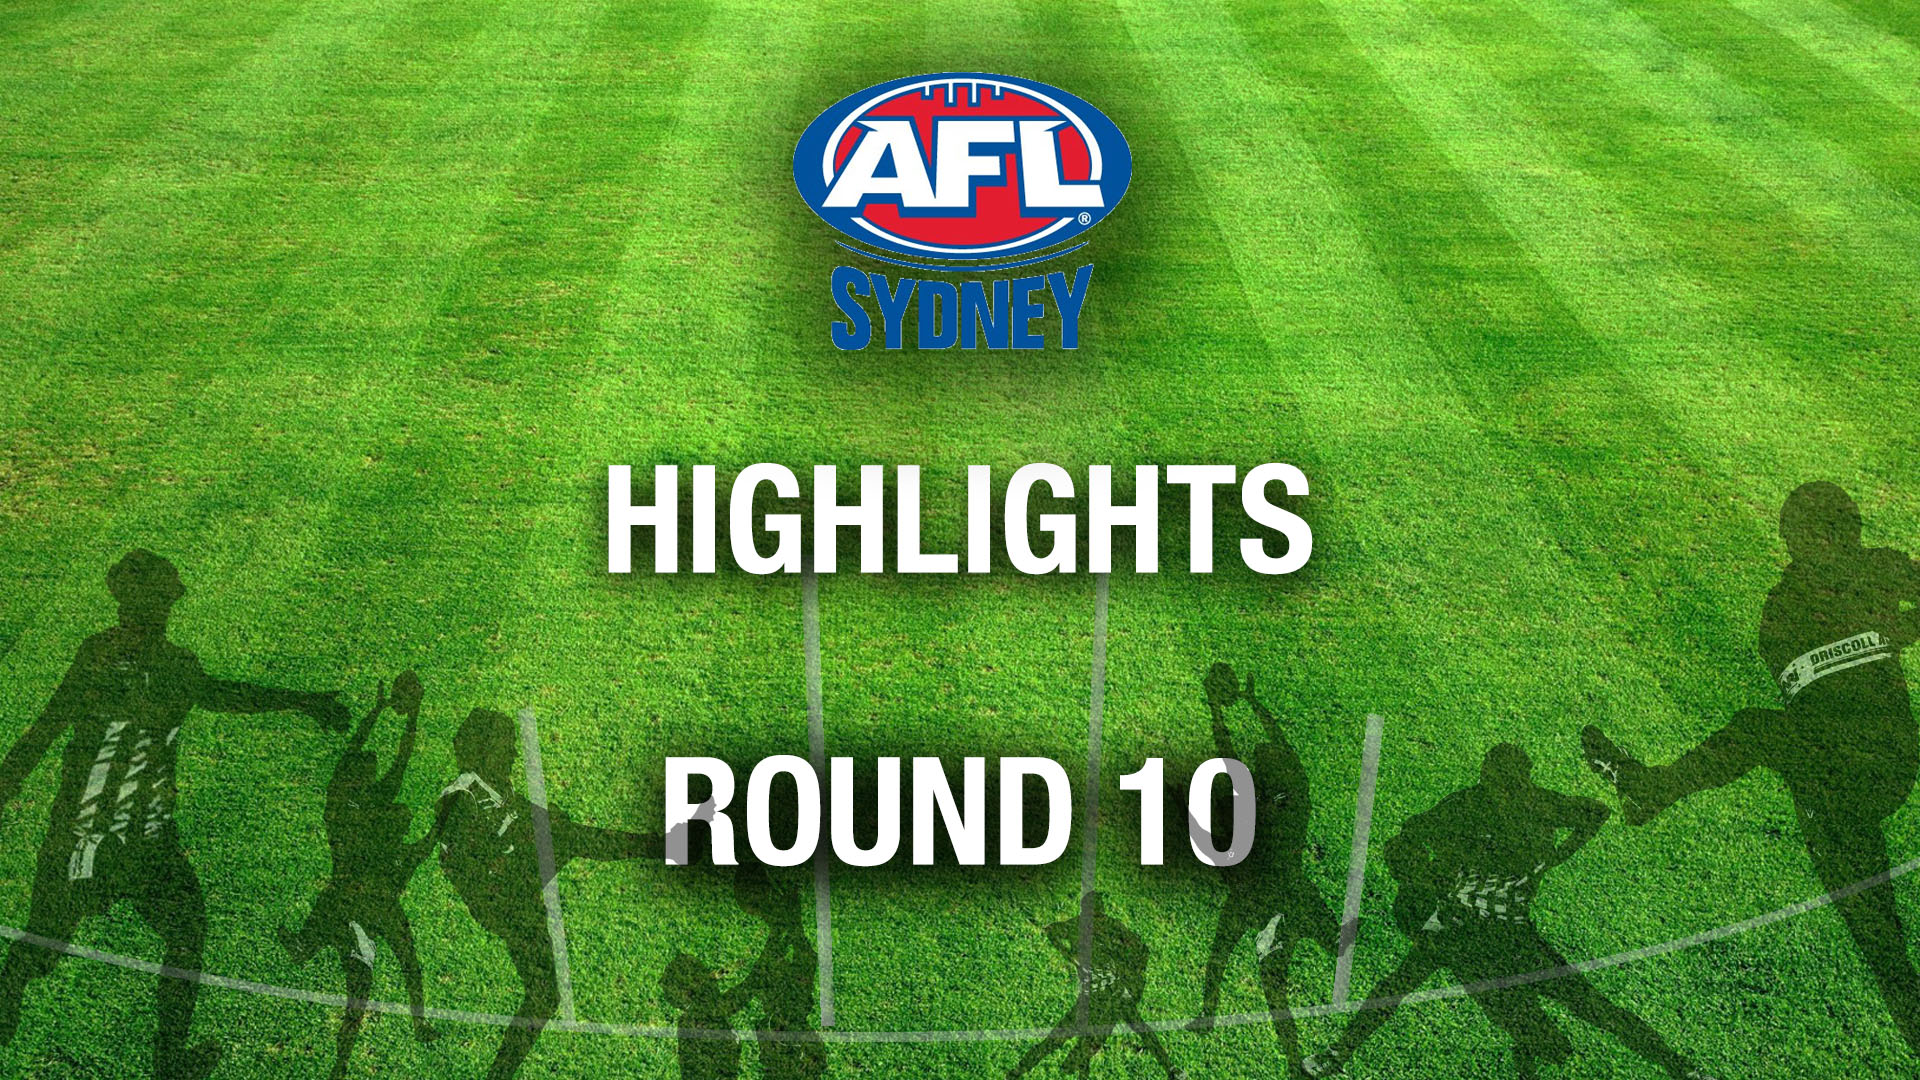 AFL SYDNEY 2018 RD 10 HIGHLIGHTS